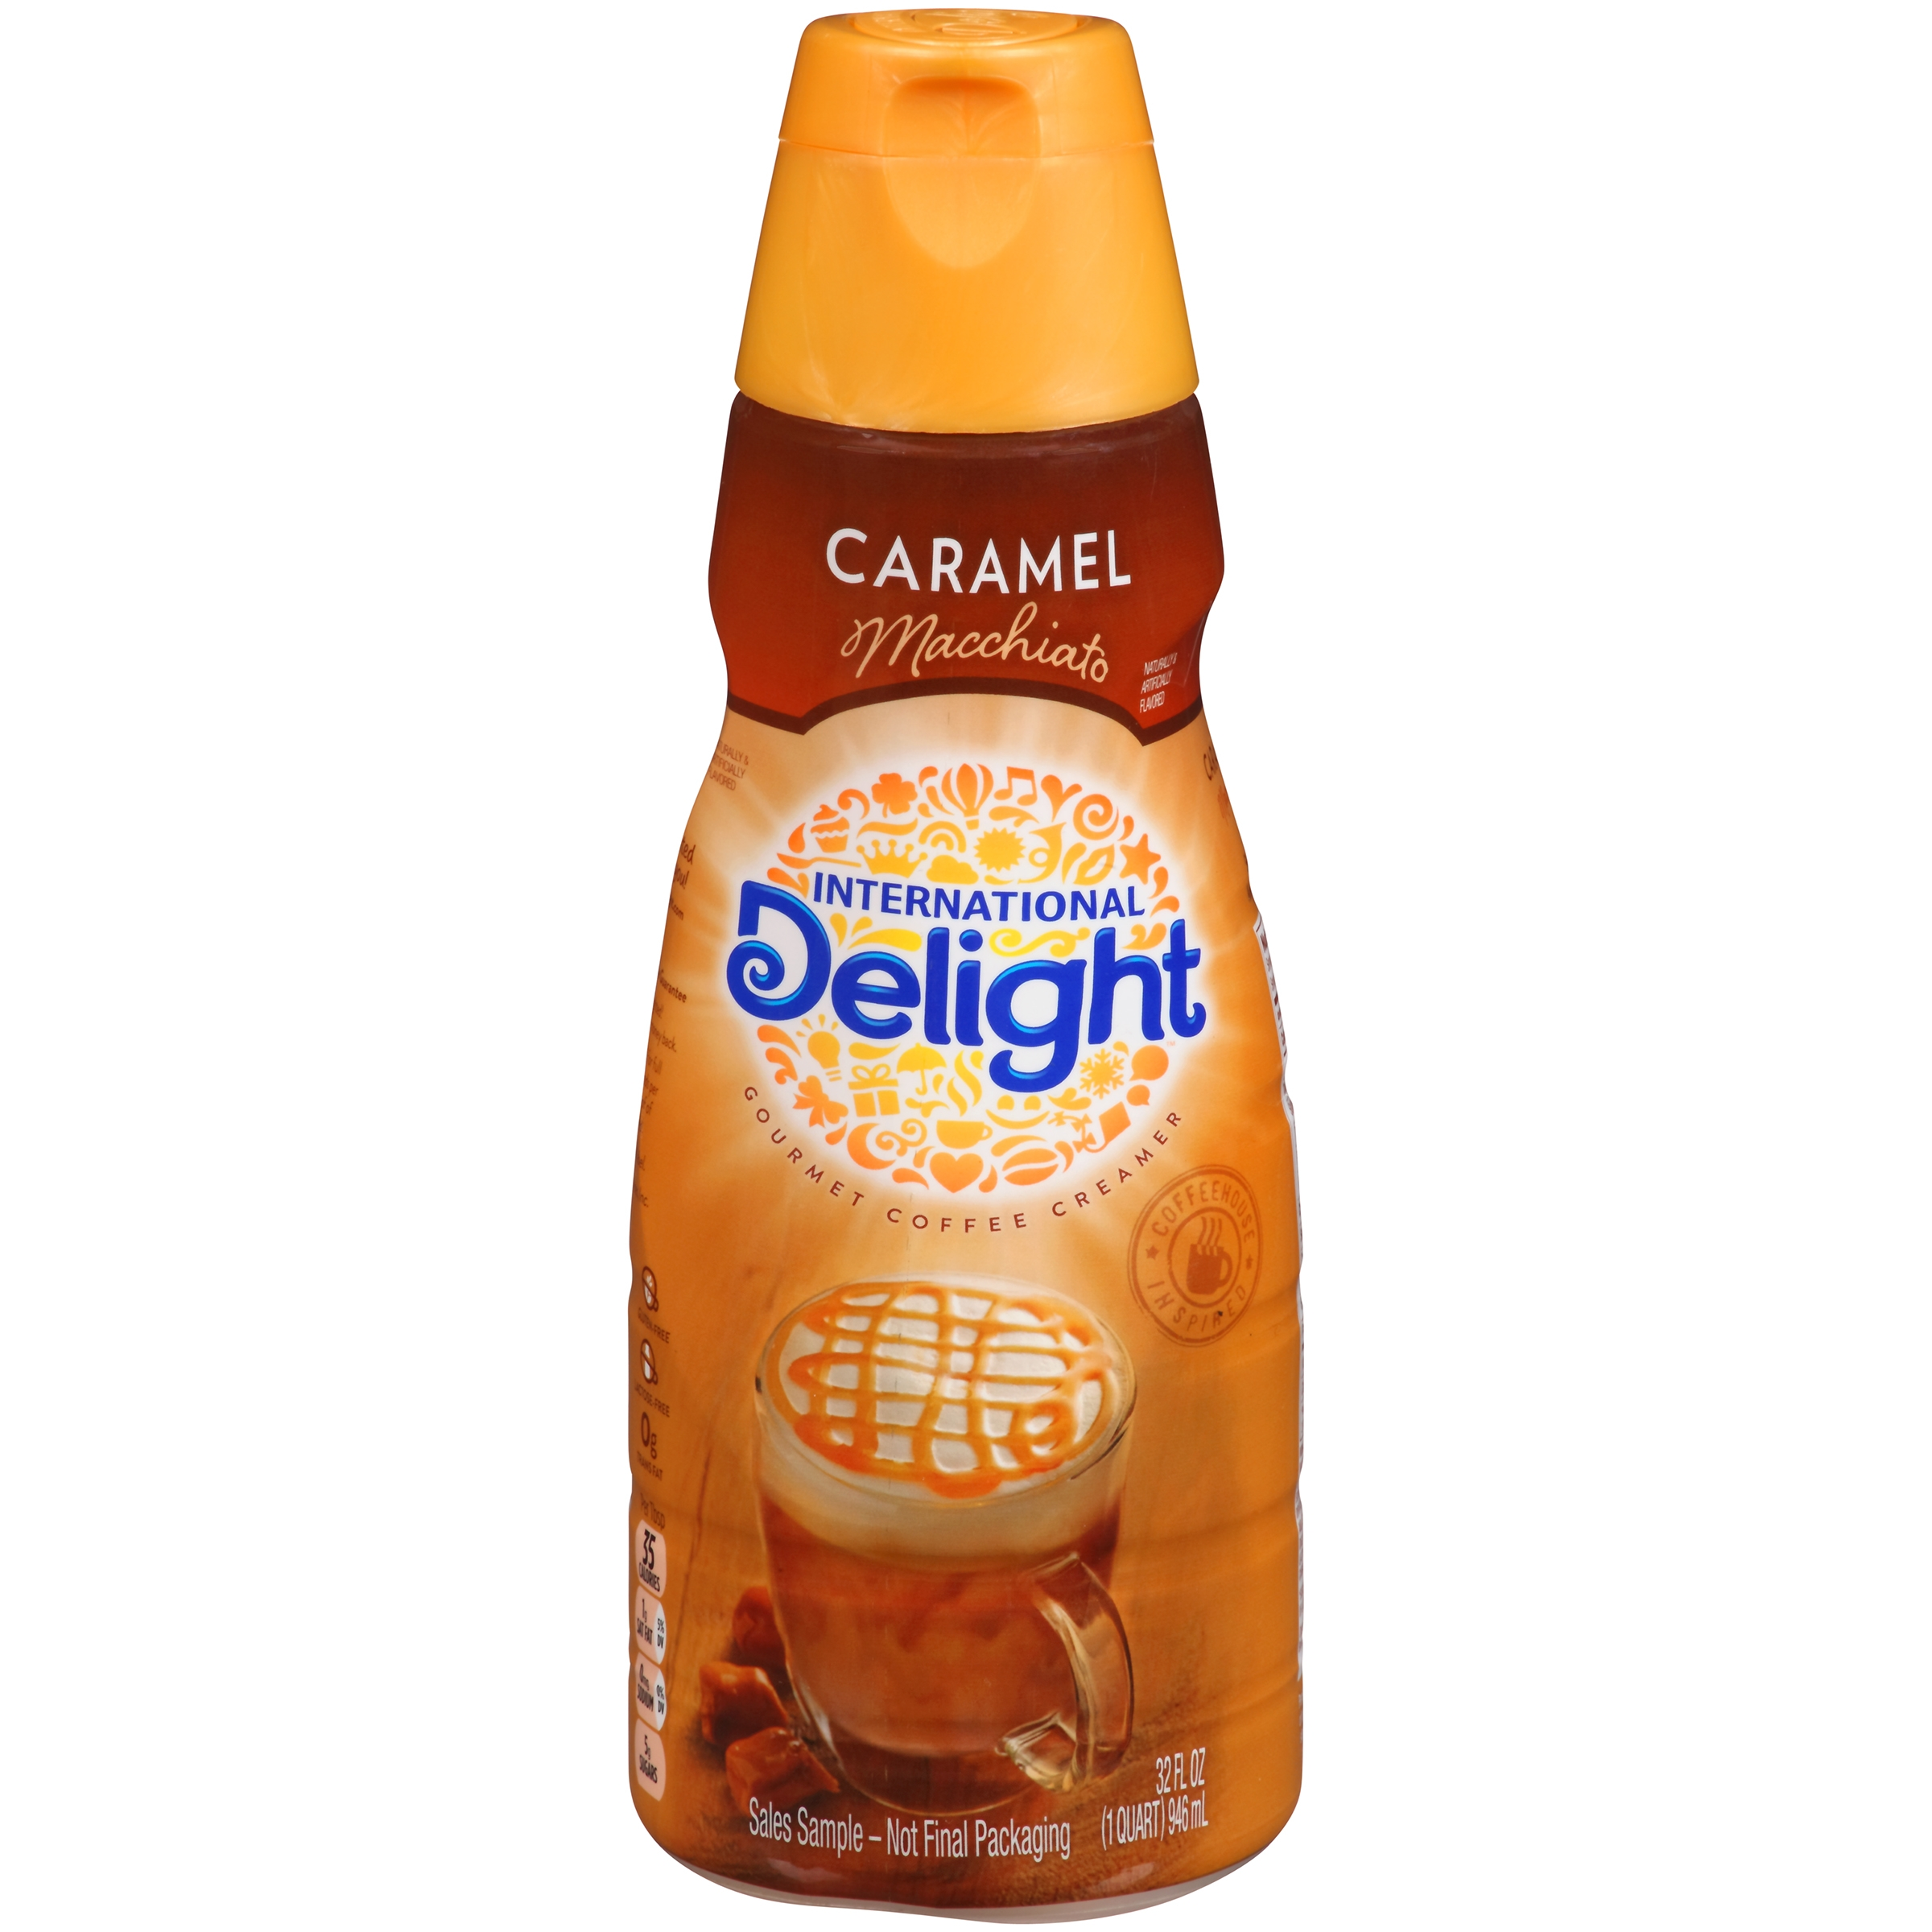 International Delight Coffee House Inspirations Caramel Macchiato Coffee Creamer, 32 oz